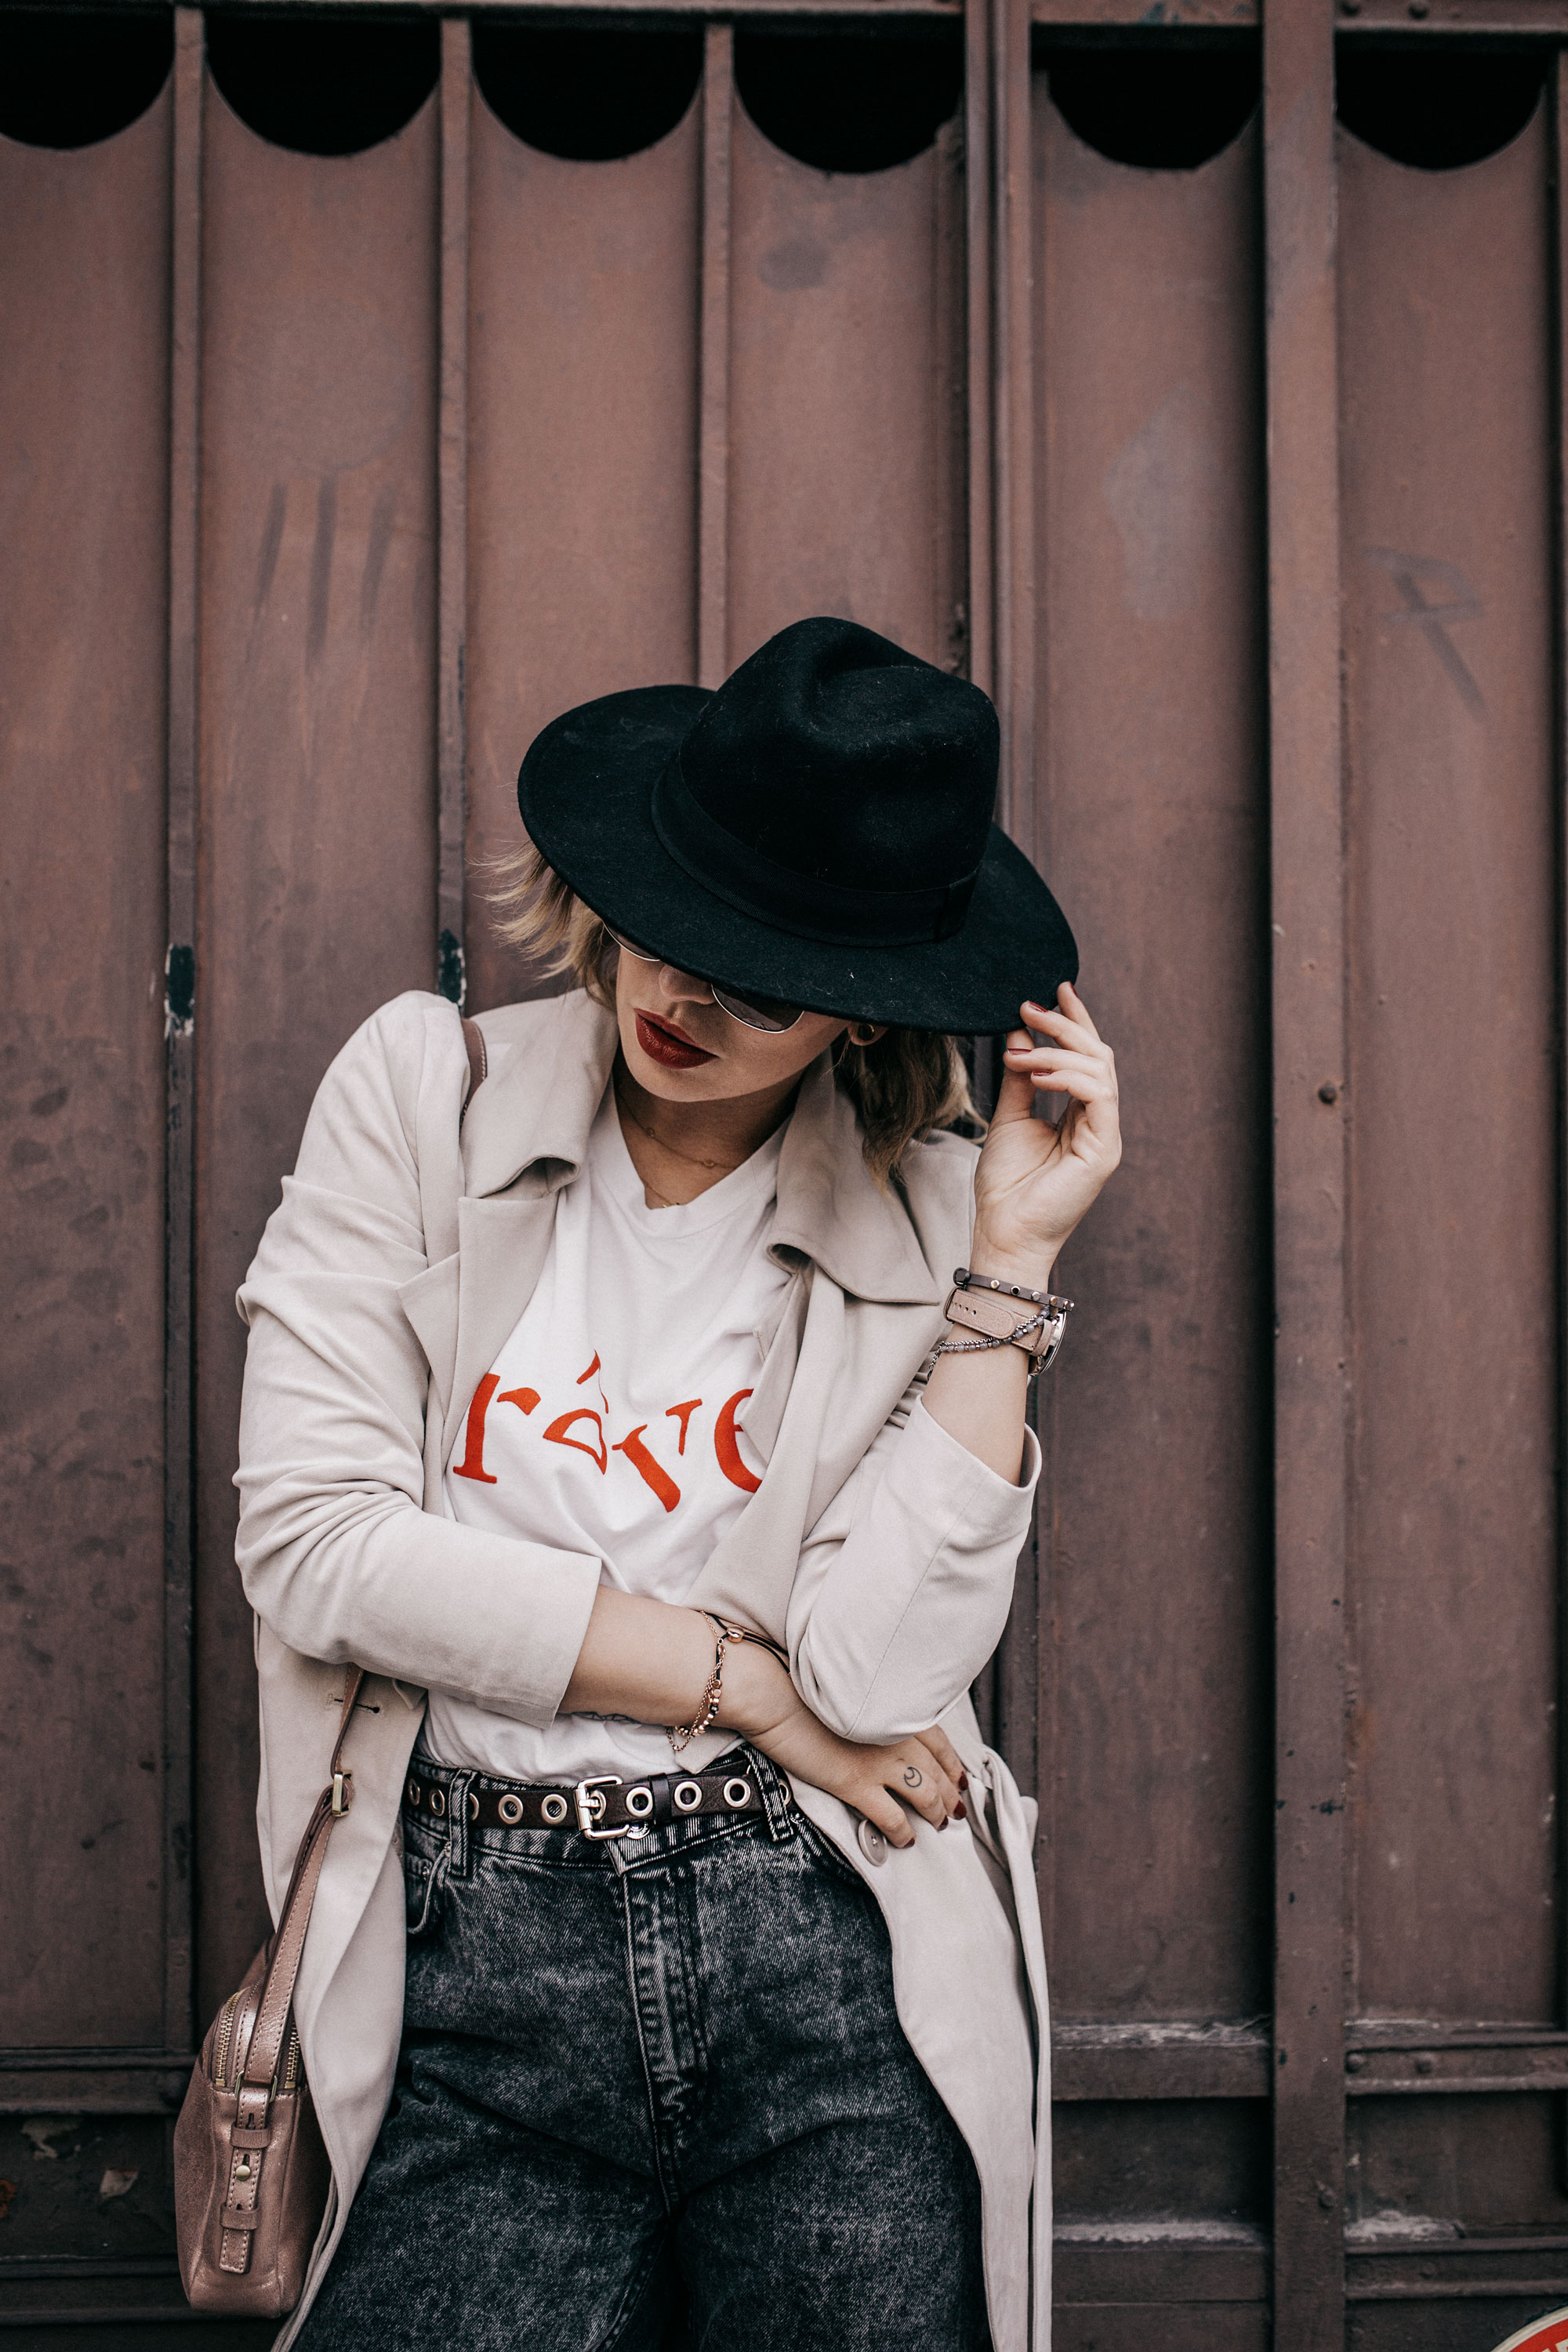 Street Style in France | style: effortless, simple, french, nude tones, spring, edgy, cool | wearing a shirt (reve), mom jeans, a trench coat and my Fossil Hybrid Smartwatch